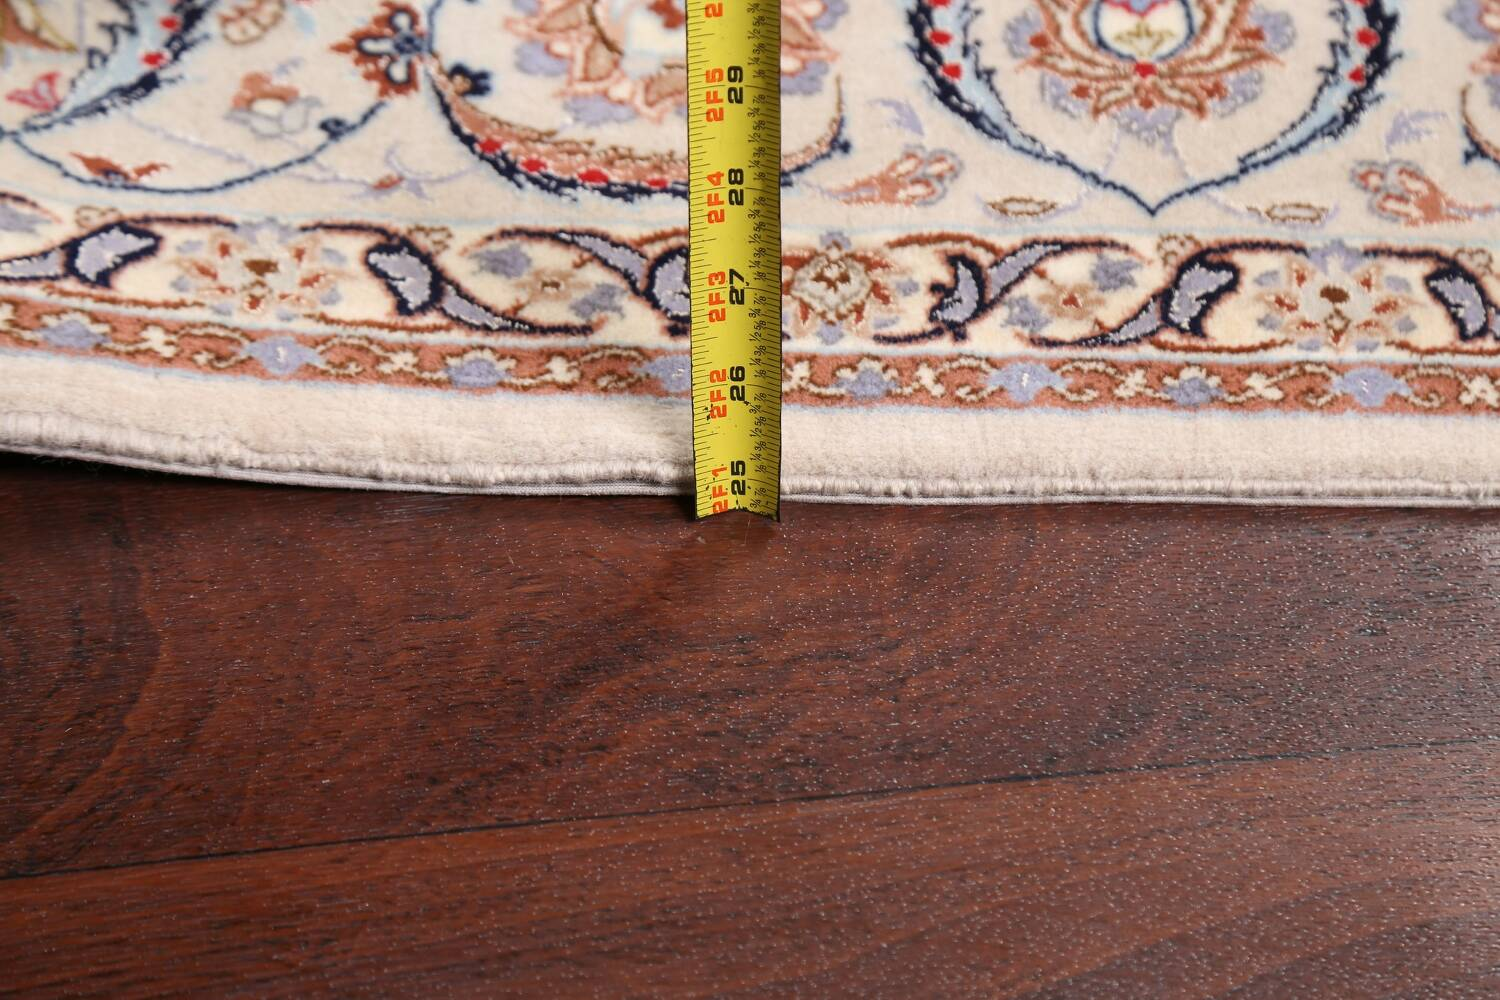 100% Vegetable Dye Floral Isfahan Persian Area Rug 5x8 image 18